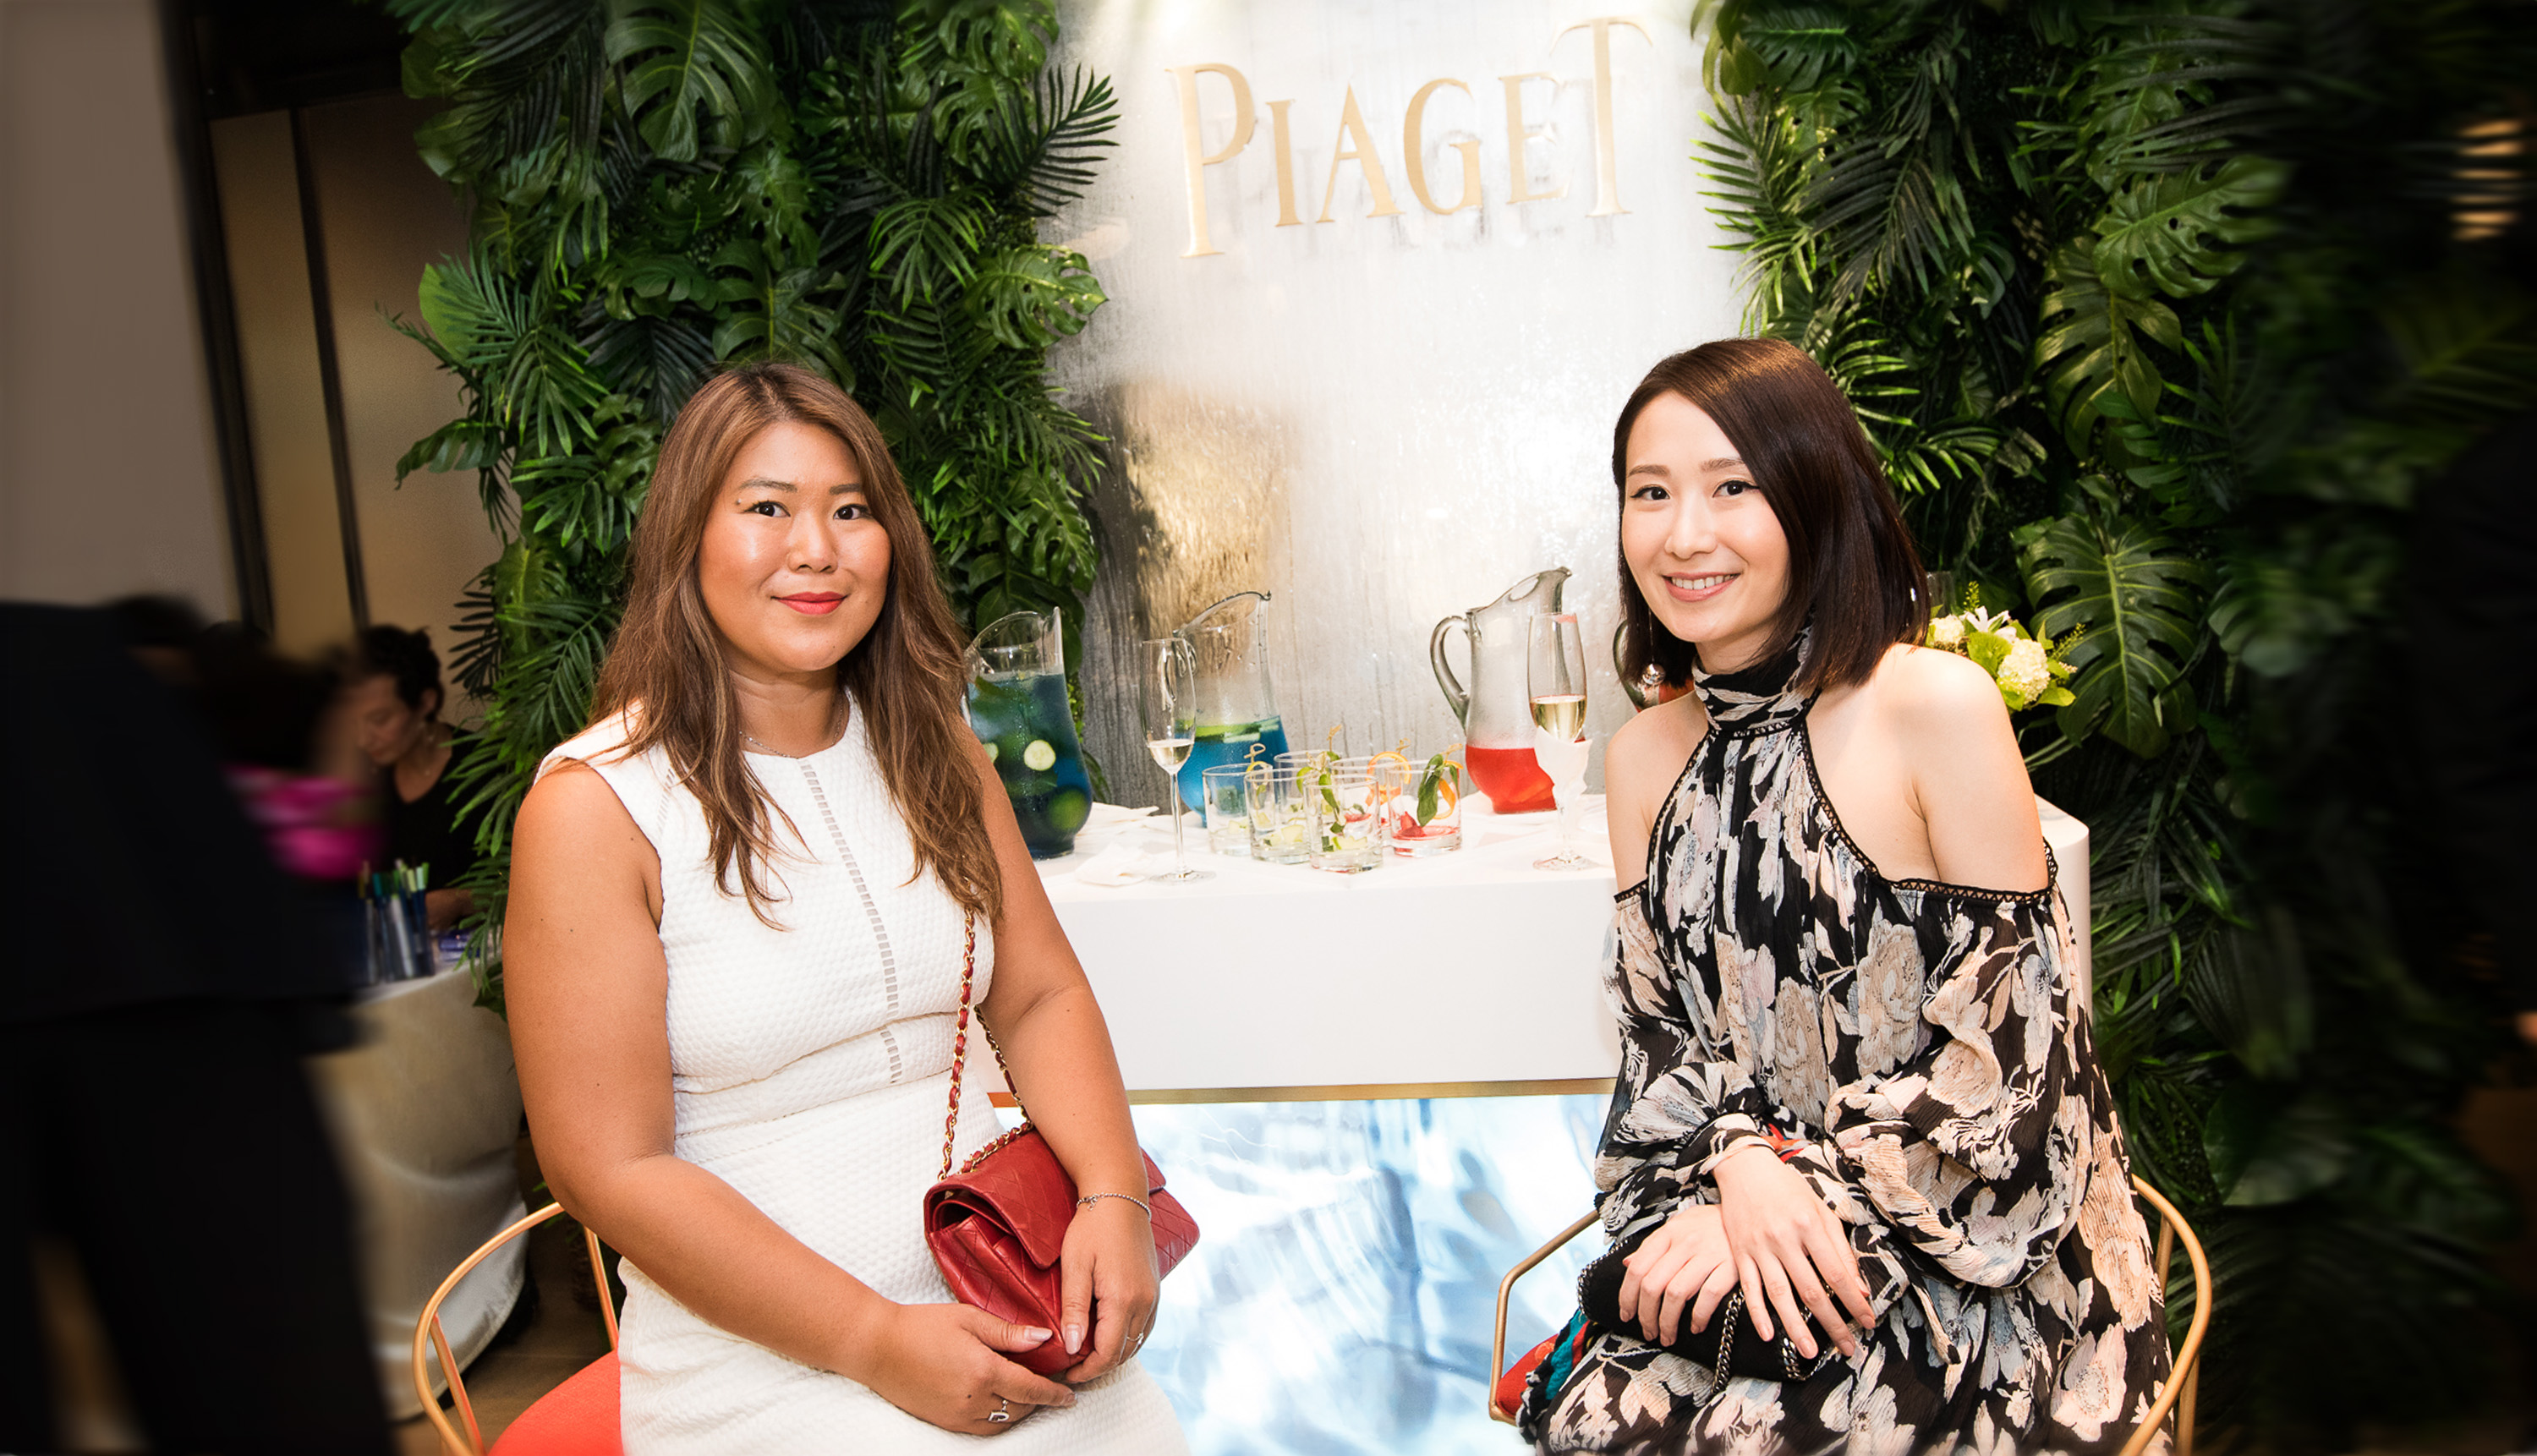 Piaget x Lifestyle Asia's exclusive 'Sunny Side of Life' cocktail party